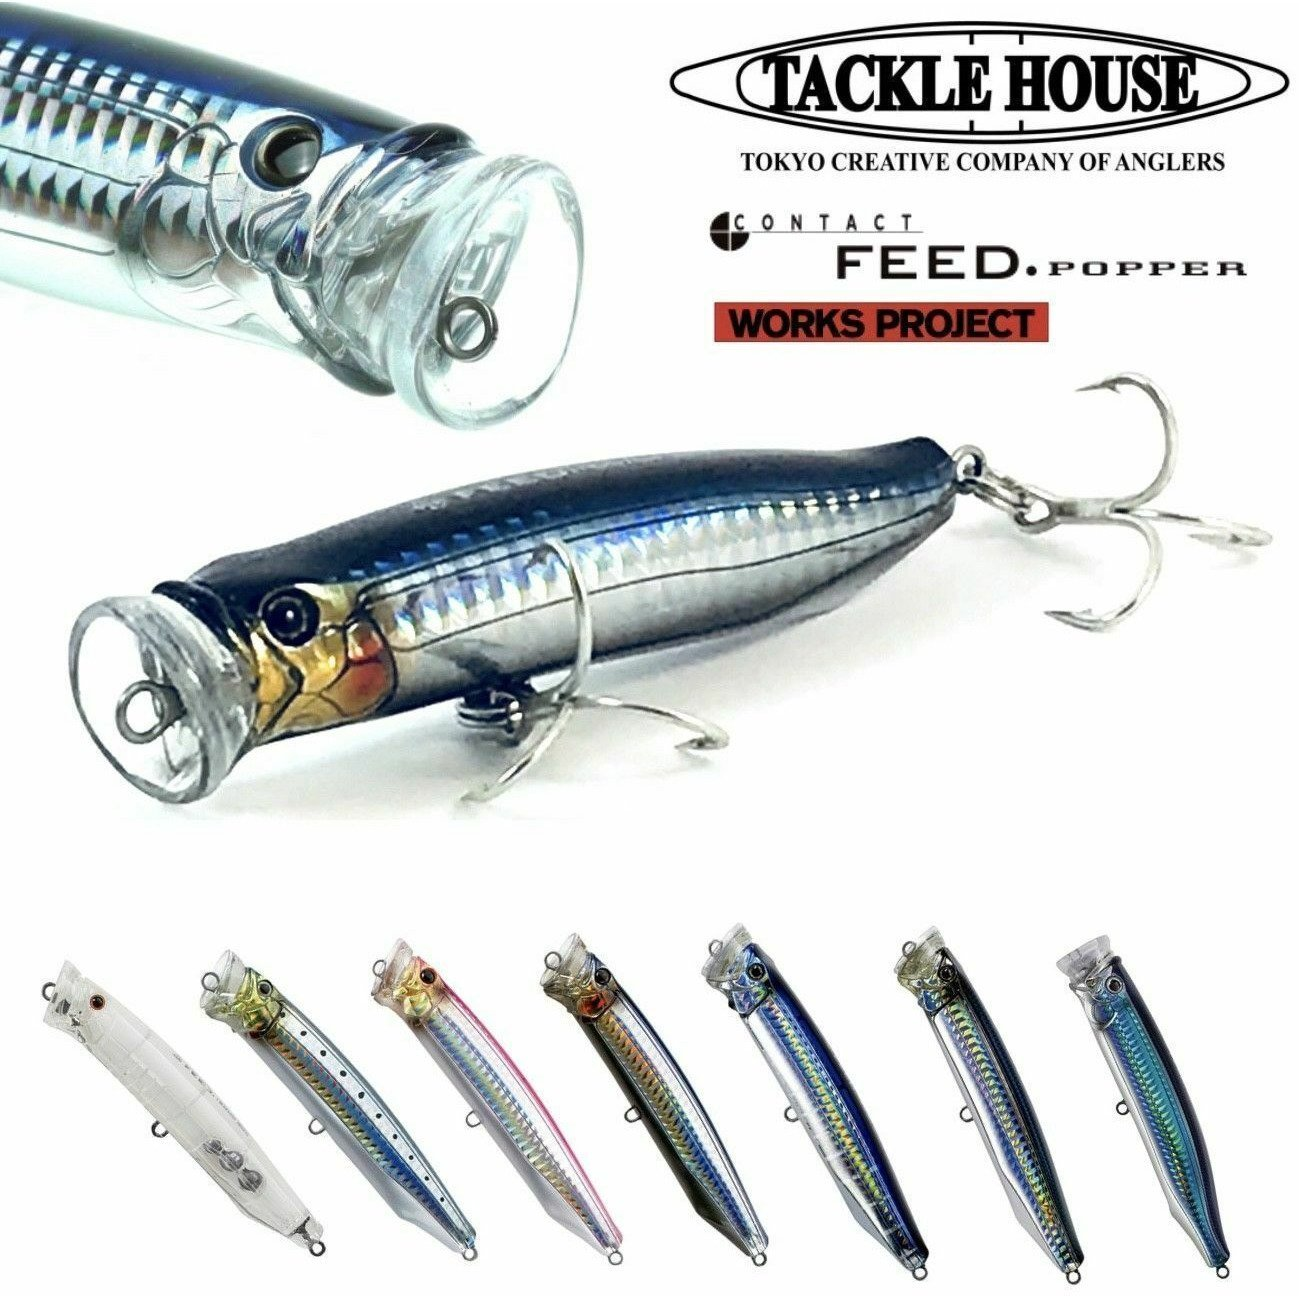 Top Water - Tackle House - Contact Feed Popper 135mm 45g -Popper - The Fishermans Hut